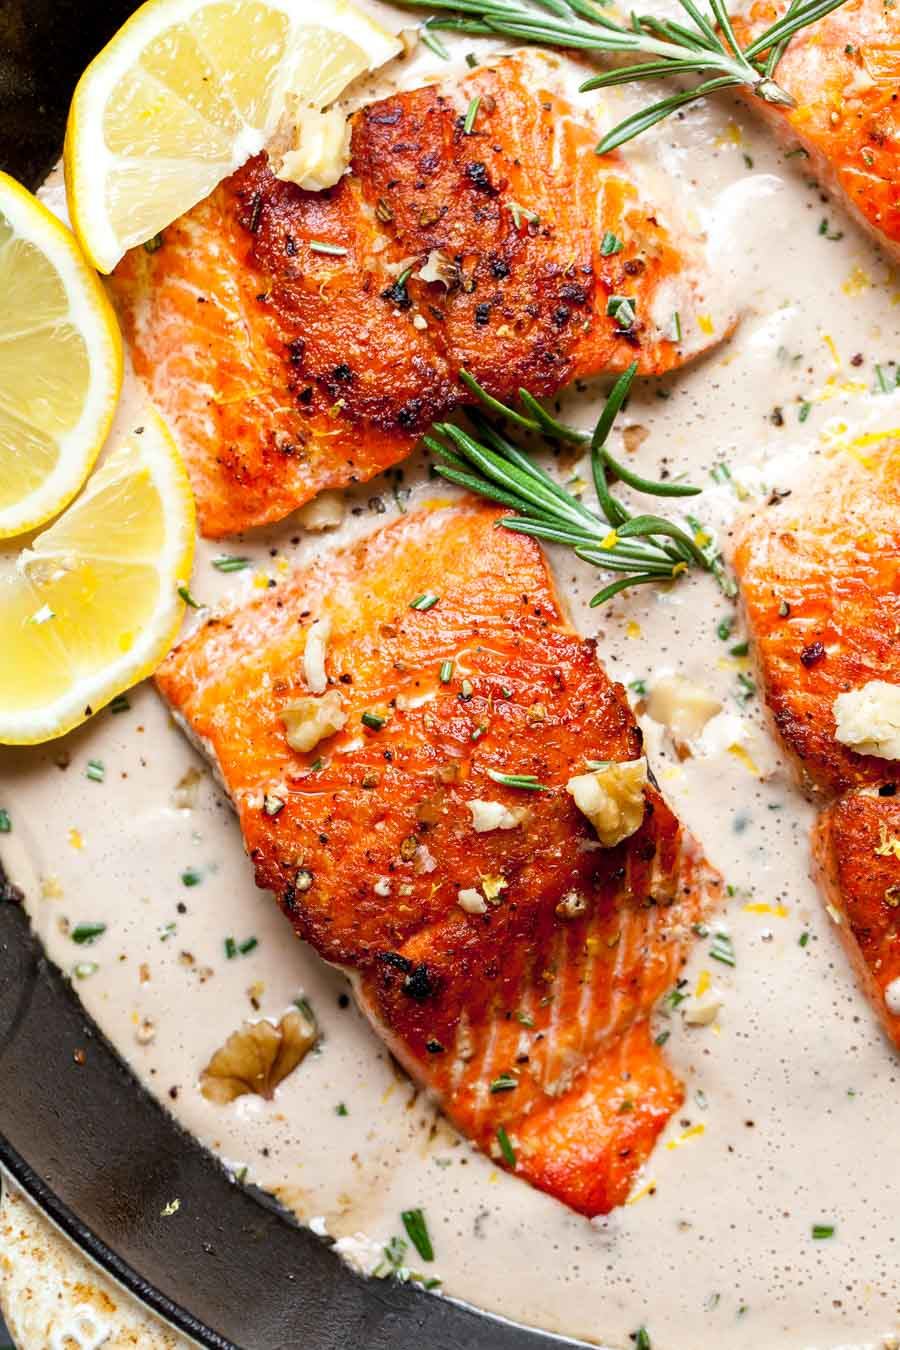 Crispy Salmon Fillets with Dairy-Free Cream Sauce